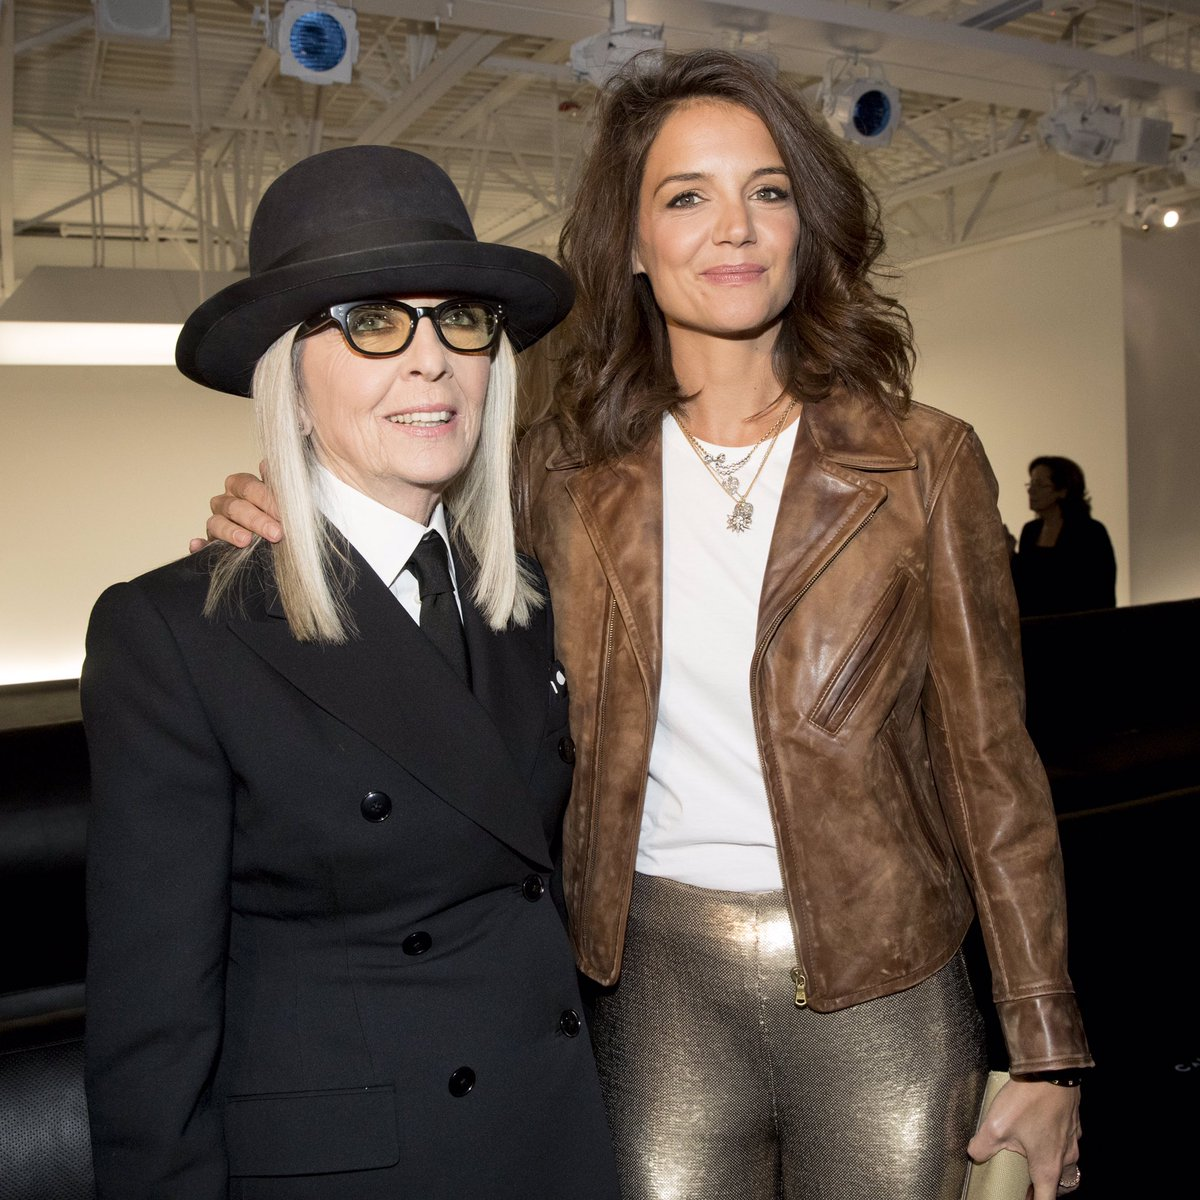 .@Diane_Keaton and @KatieHolmes212 at Ralph's Garage for the Fall 2017 Fashion Show. #RLFall2017 #NYFW https://t.co/KkJIXKIO5w